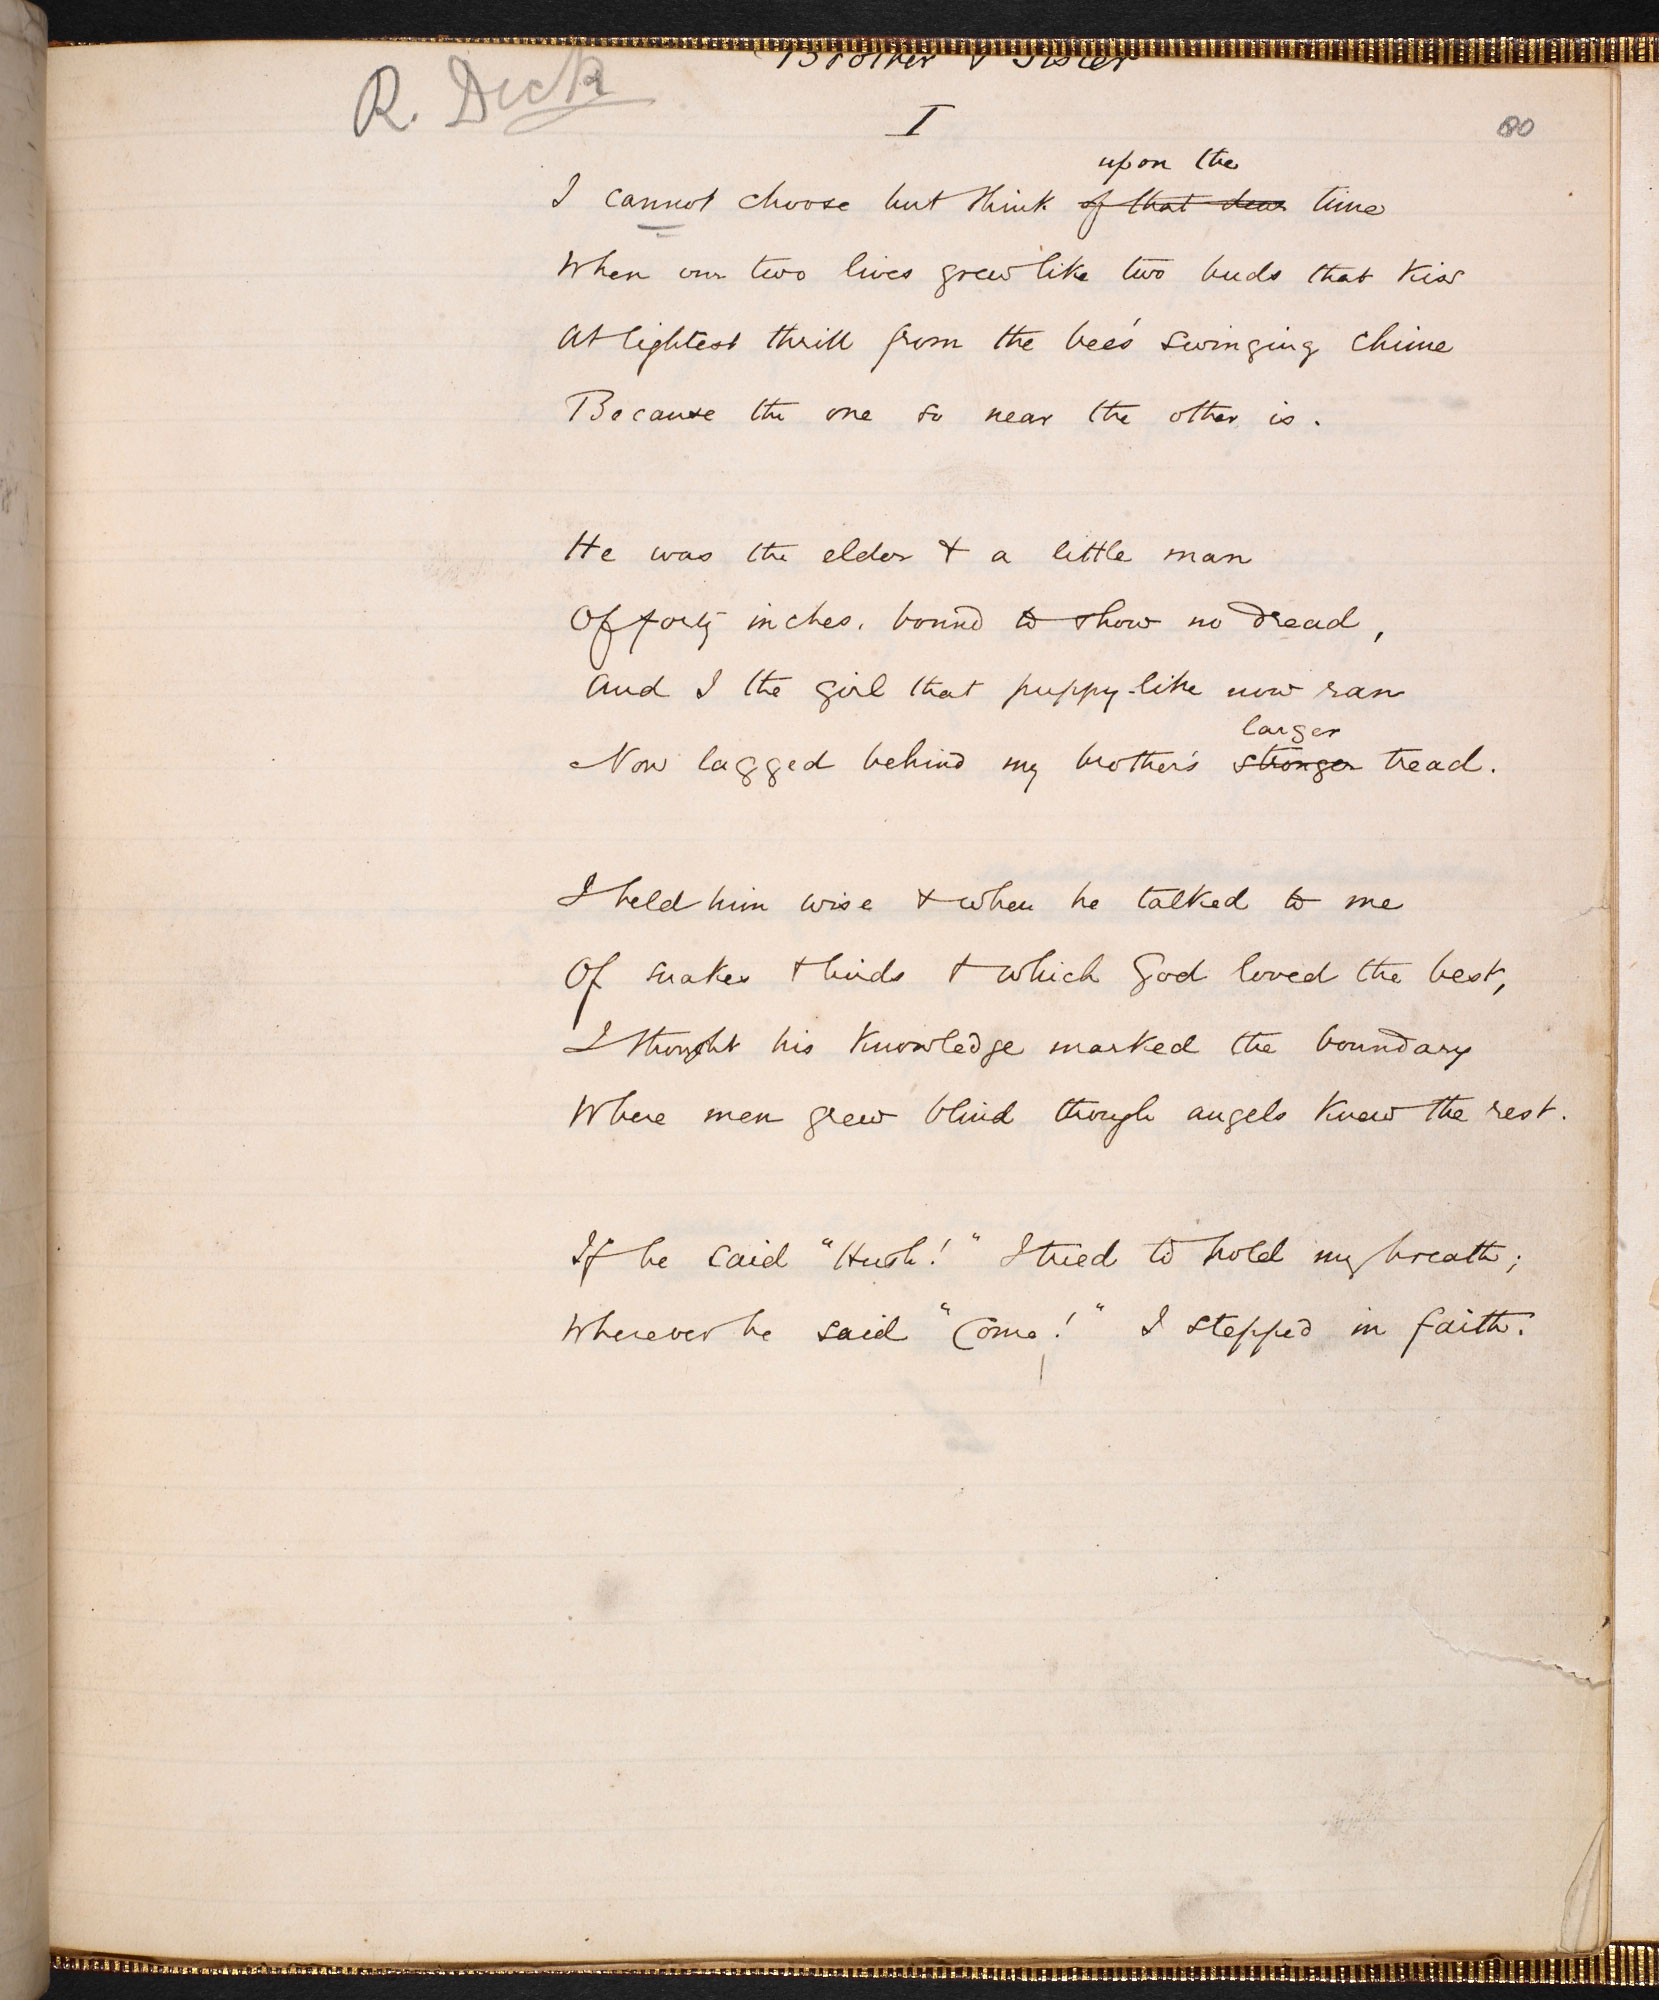 Brother and Sister: sonnet sequence by George Eliot - The